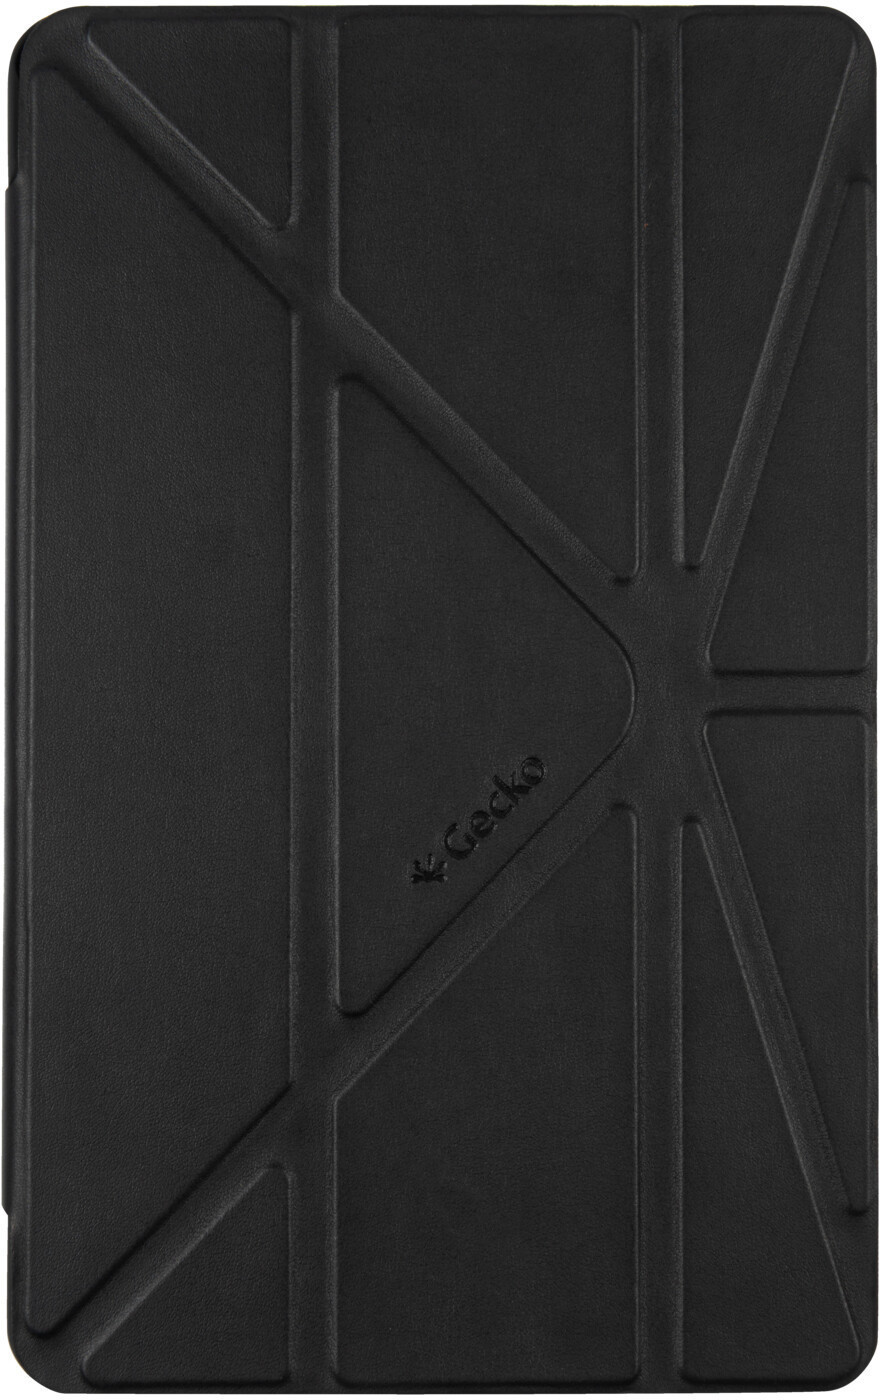 Image of Gecko Covers Origami Cover Galaxy Tab A 10.5 Black